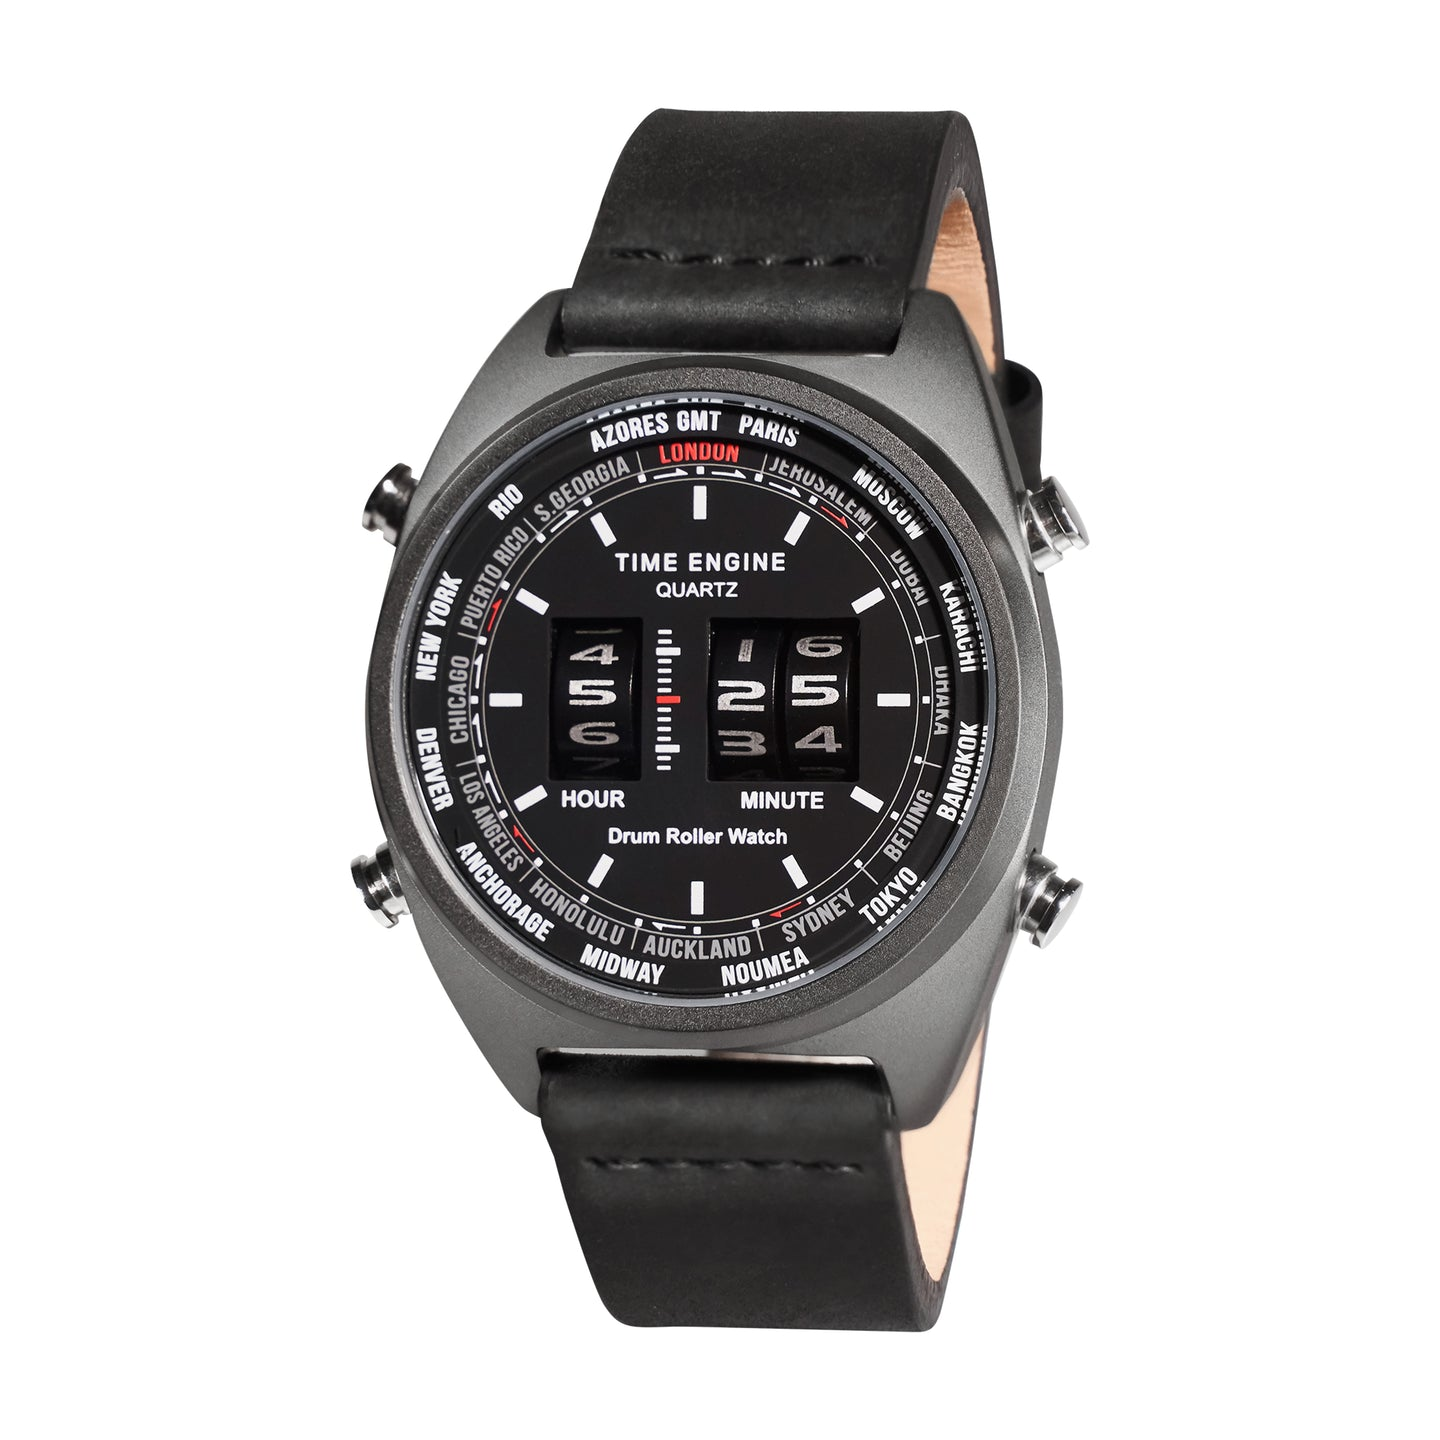 Time Engine Drum Watch - Black IP Case with Black Strap